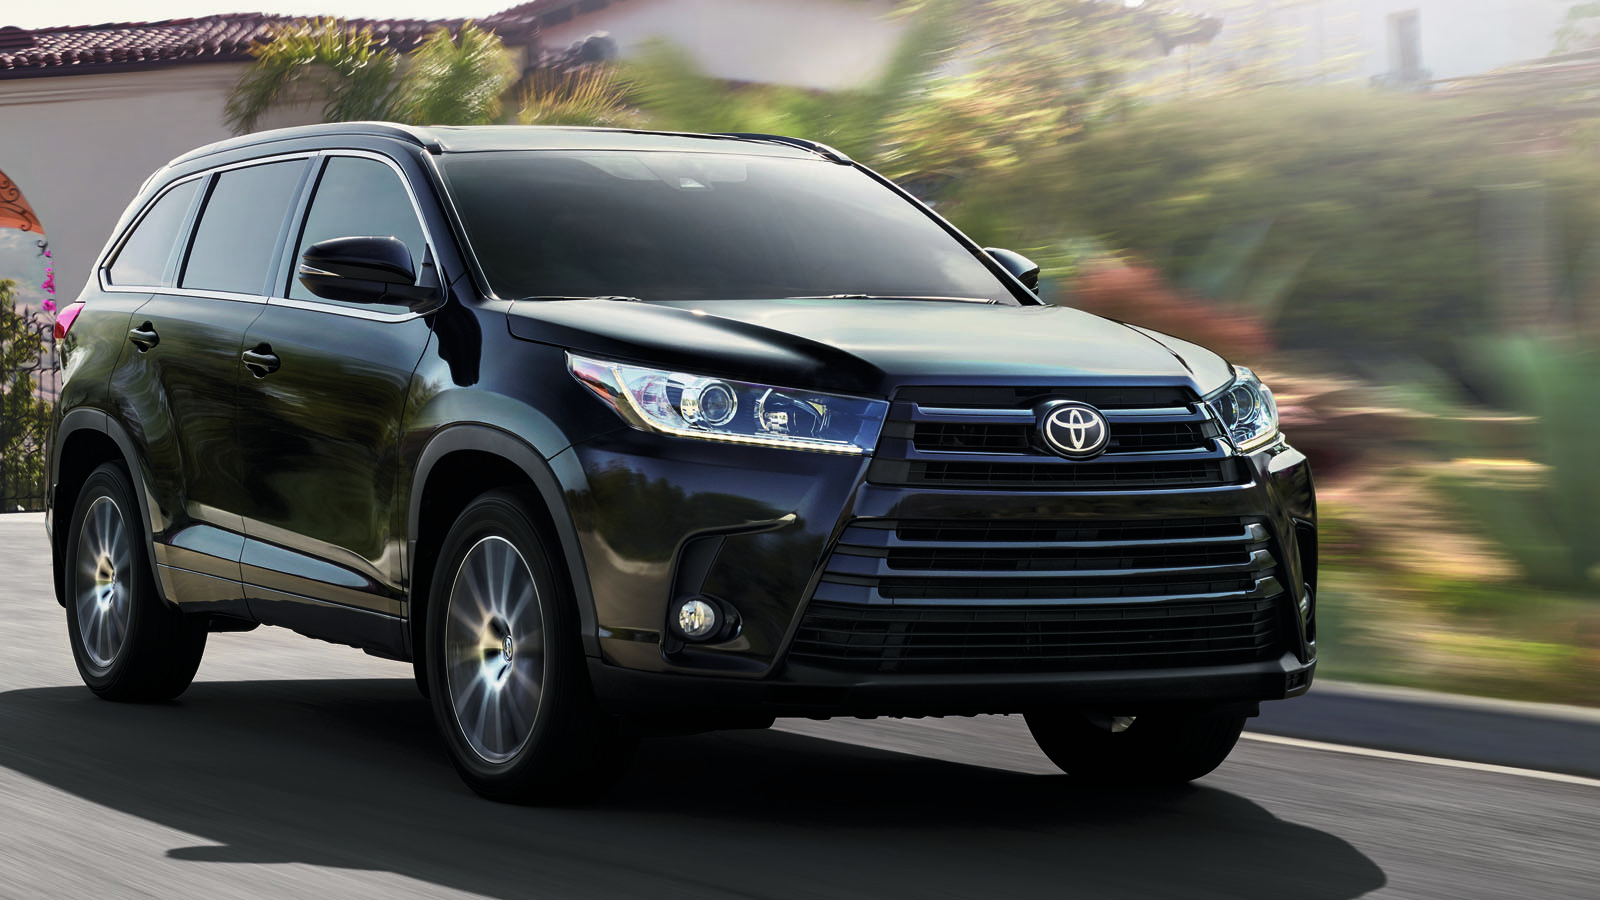 introducing the 2018 toyota highlander peruzzi toyota blog. Black Bedroom Furniture Sets. Home Design Ideas